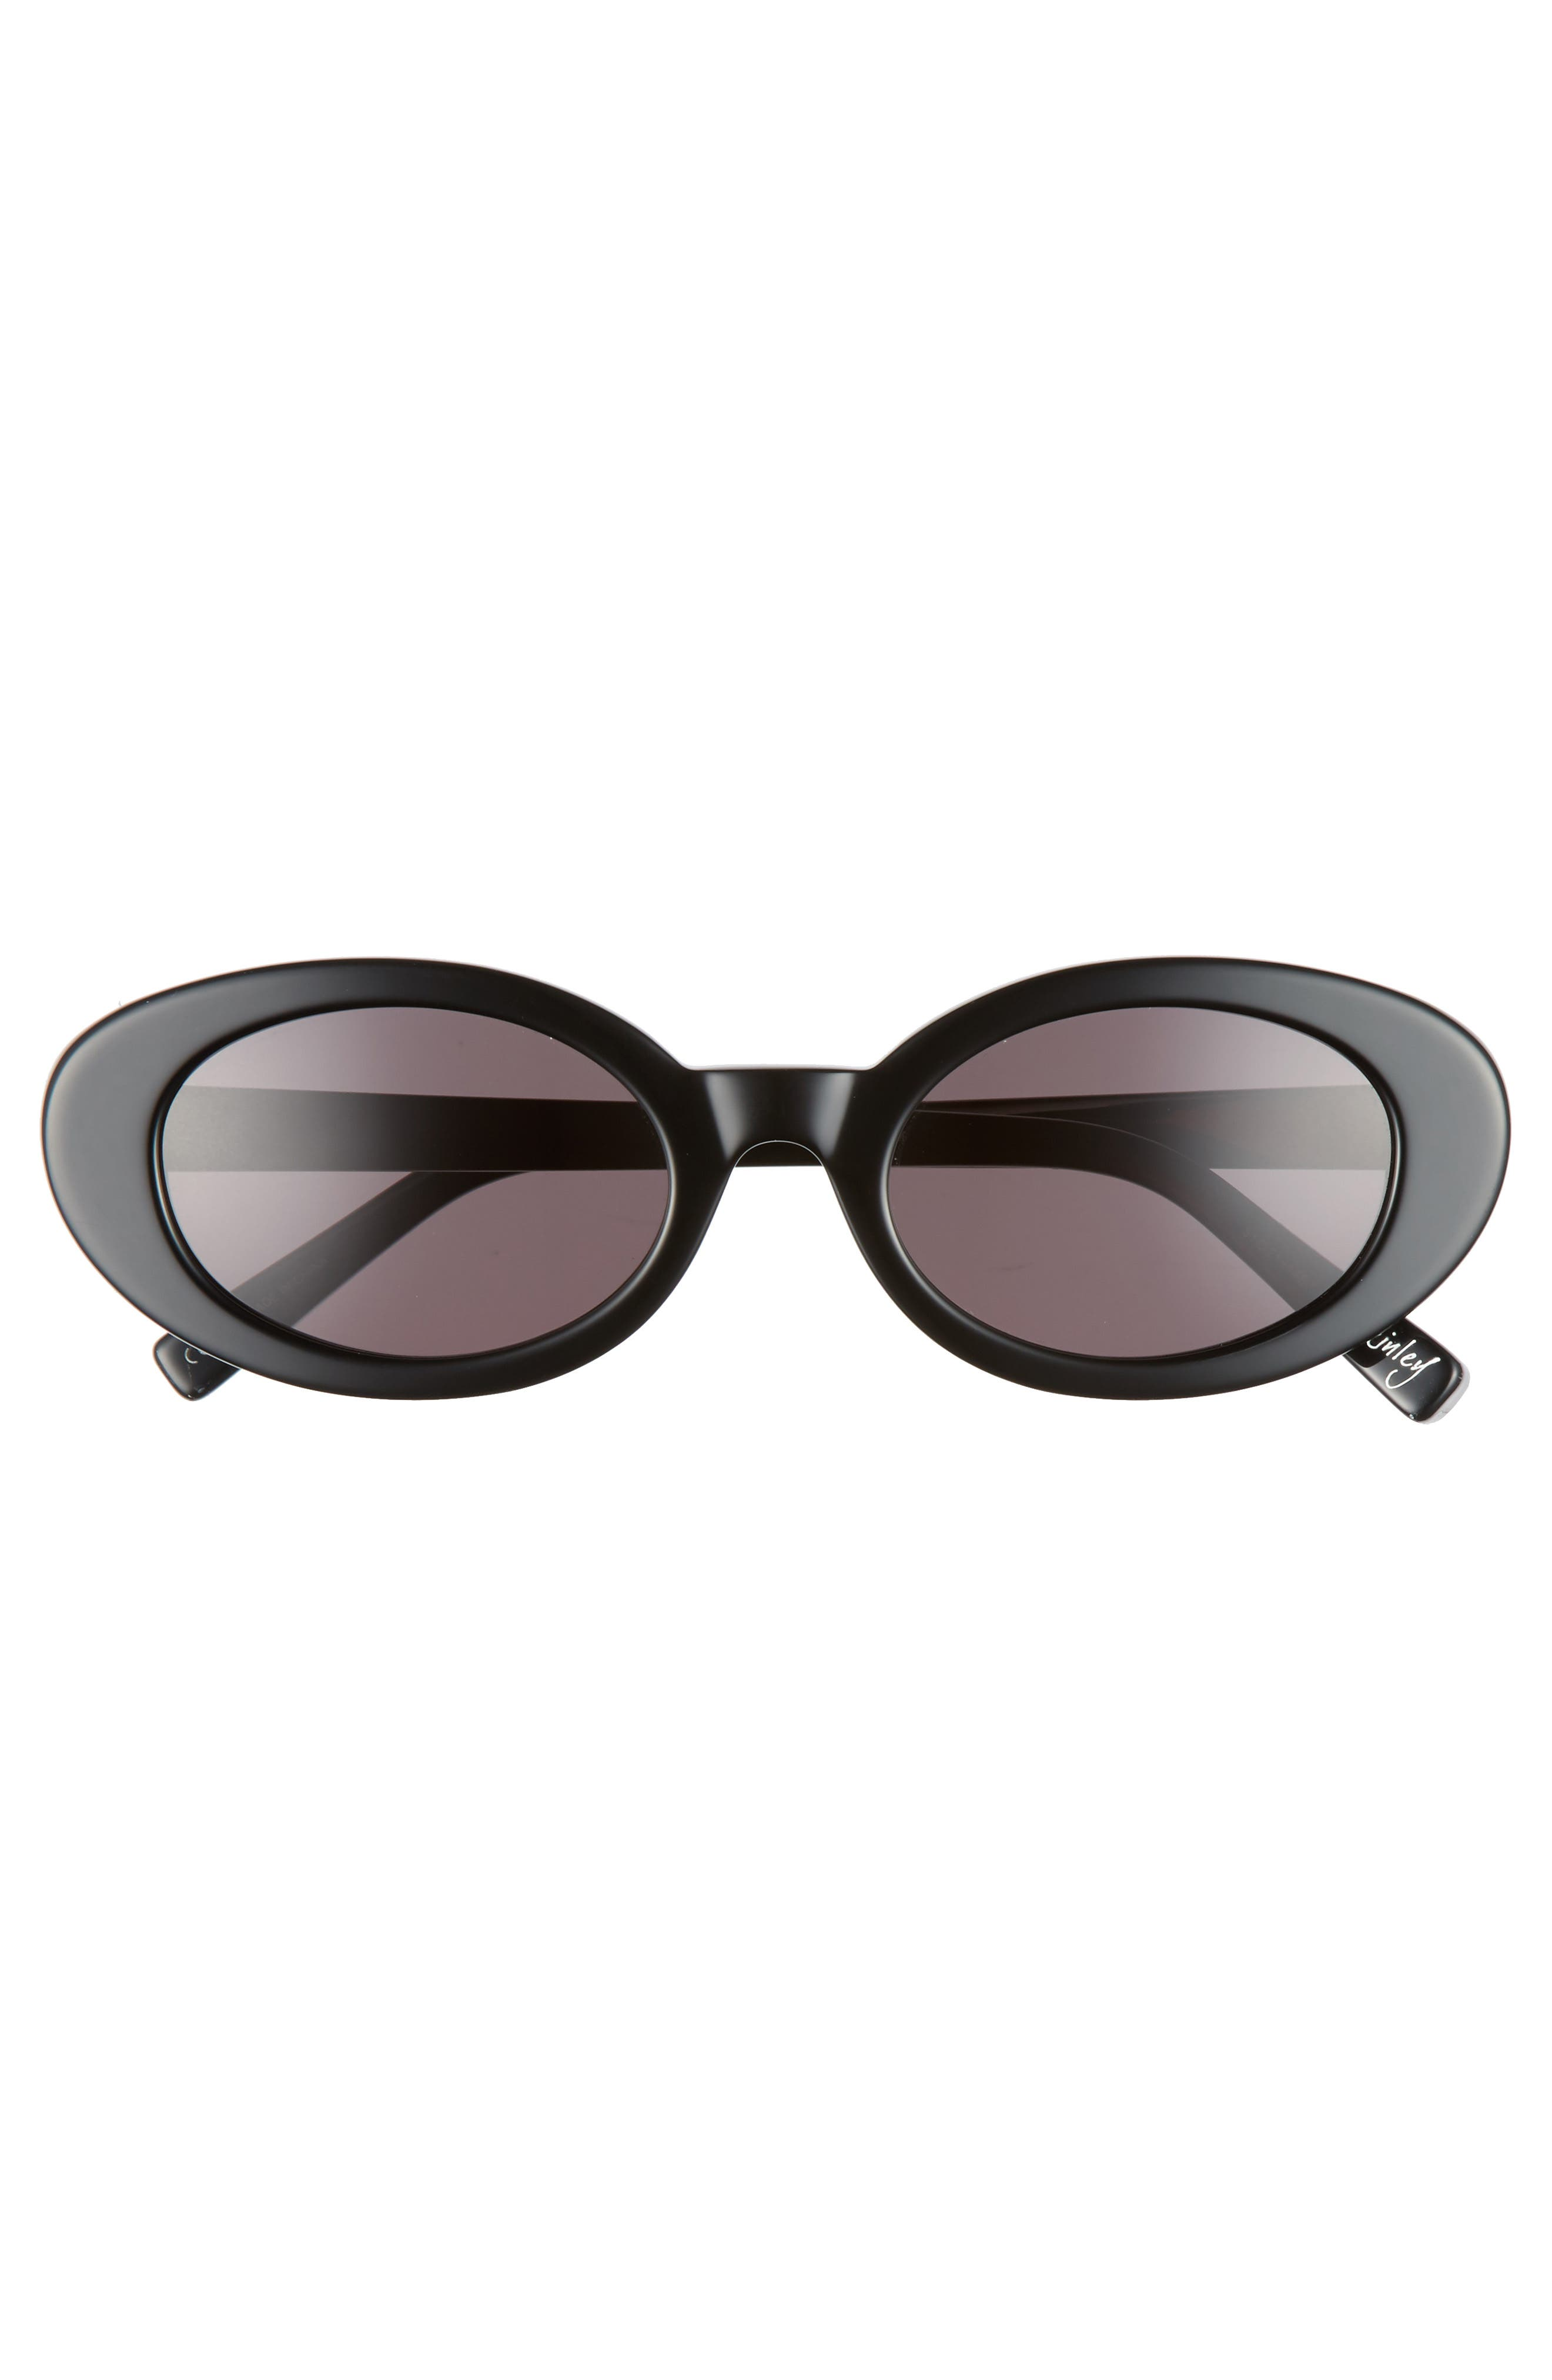 McKinely 51mm Oval Sunglasses,                             Alternate thumbnail 3, color,                             001